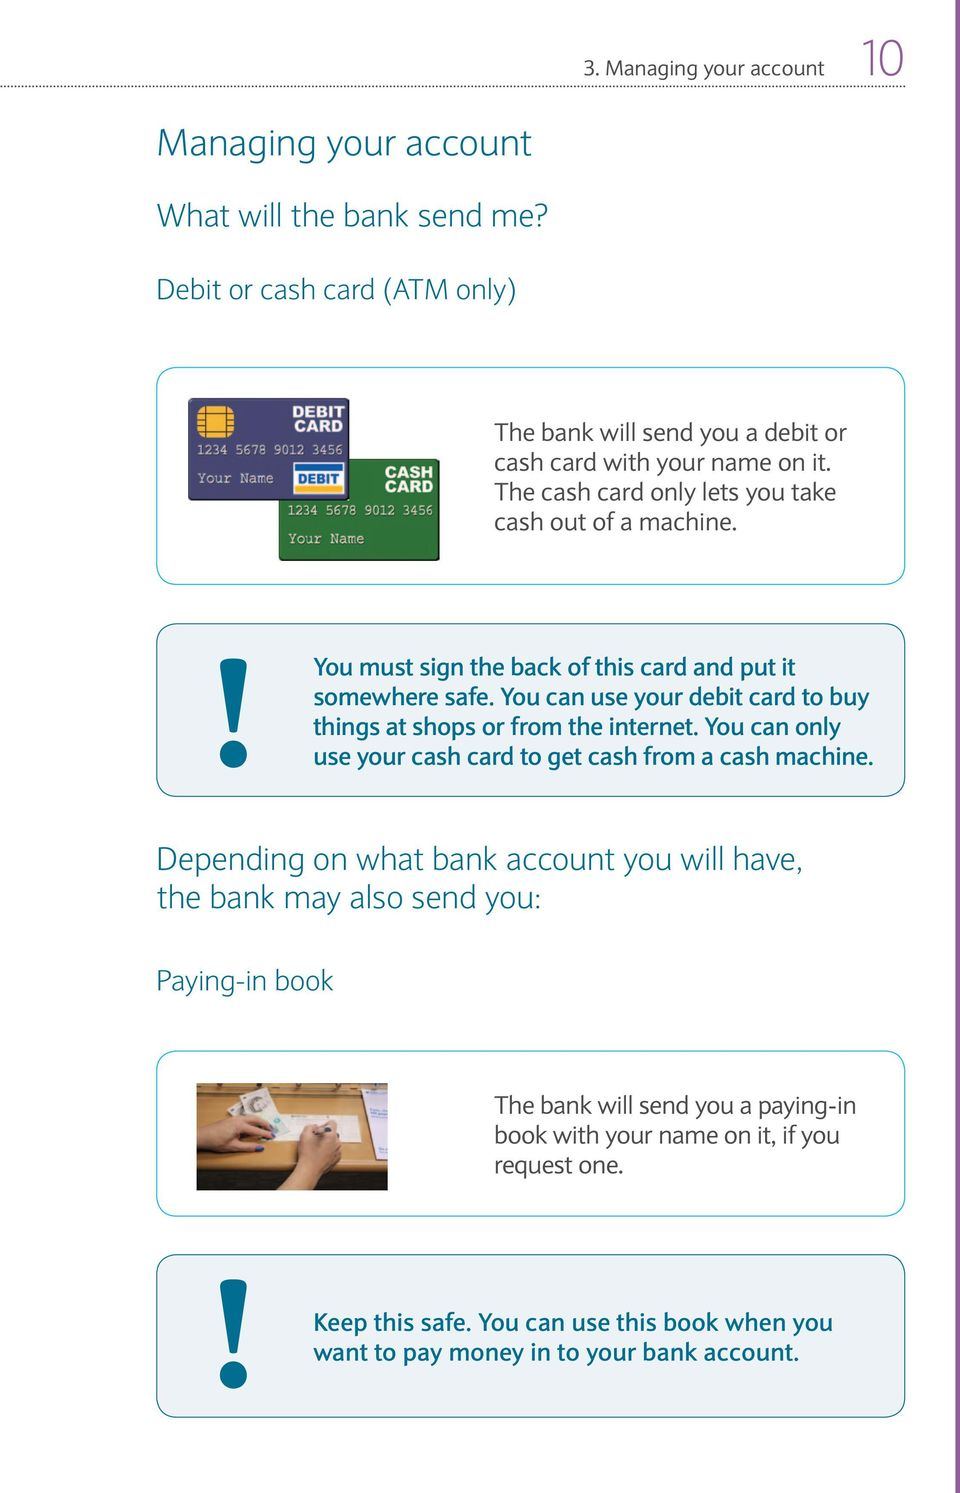 You can use your debit card to buy things at shops or from the internet. You can only use your cash card to get cash from a cash machine.